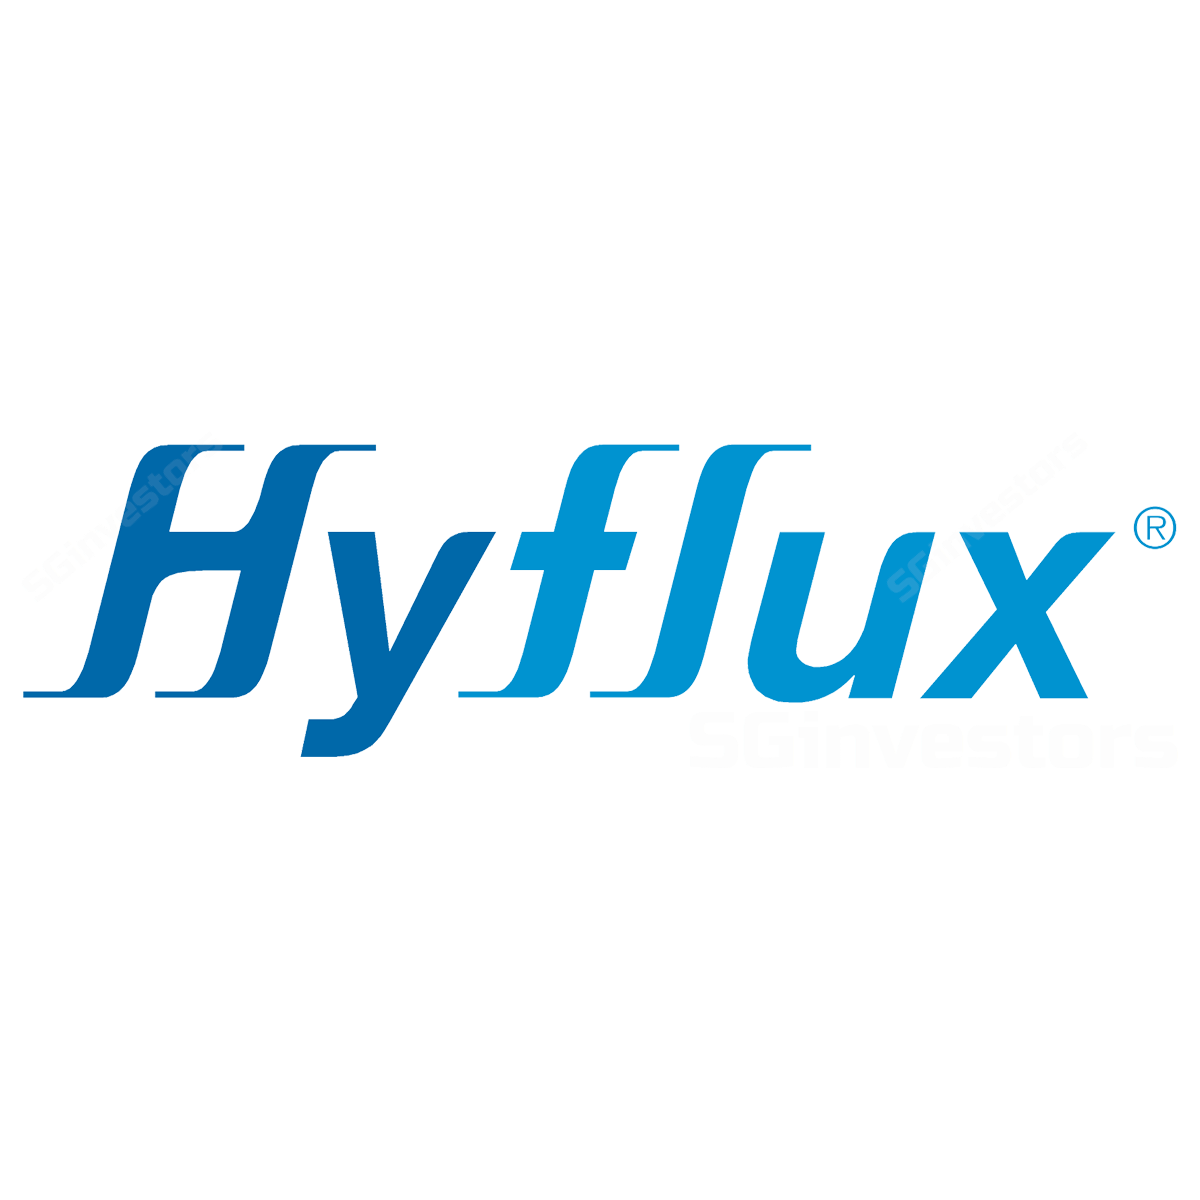 Hyflux Corporate Action - Dividends / Rights / Splits (SGX:600) | SG